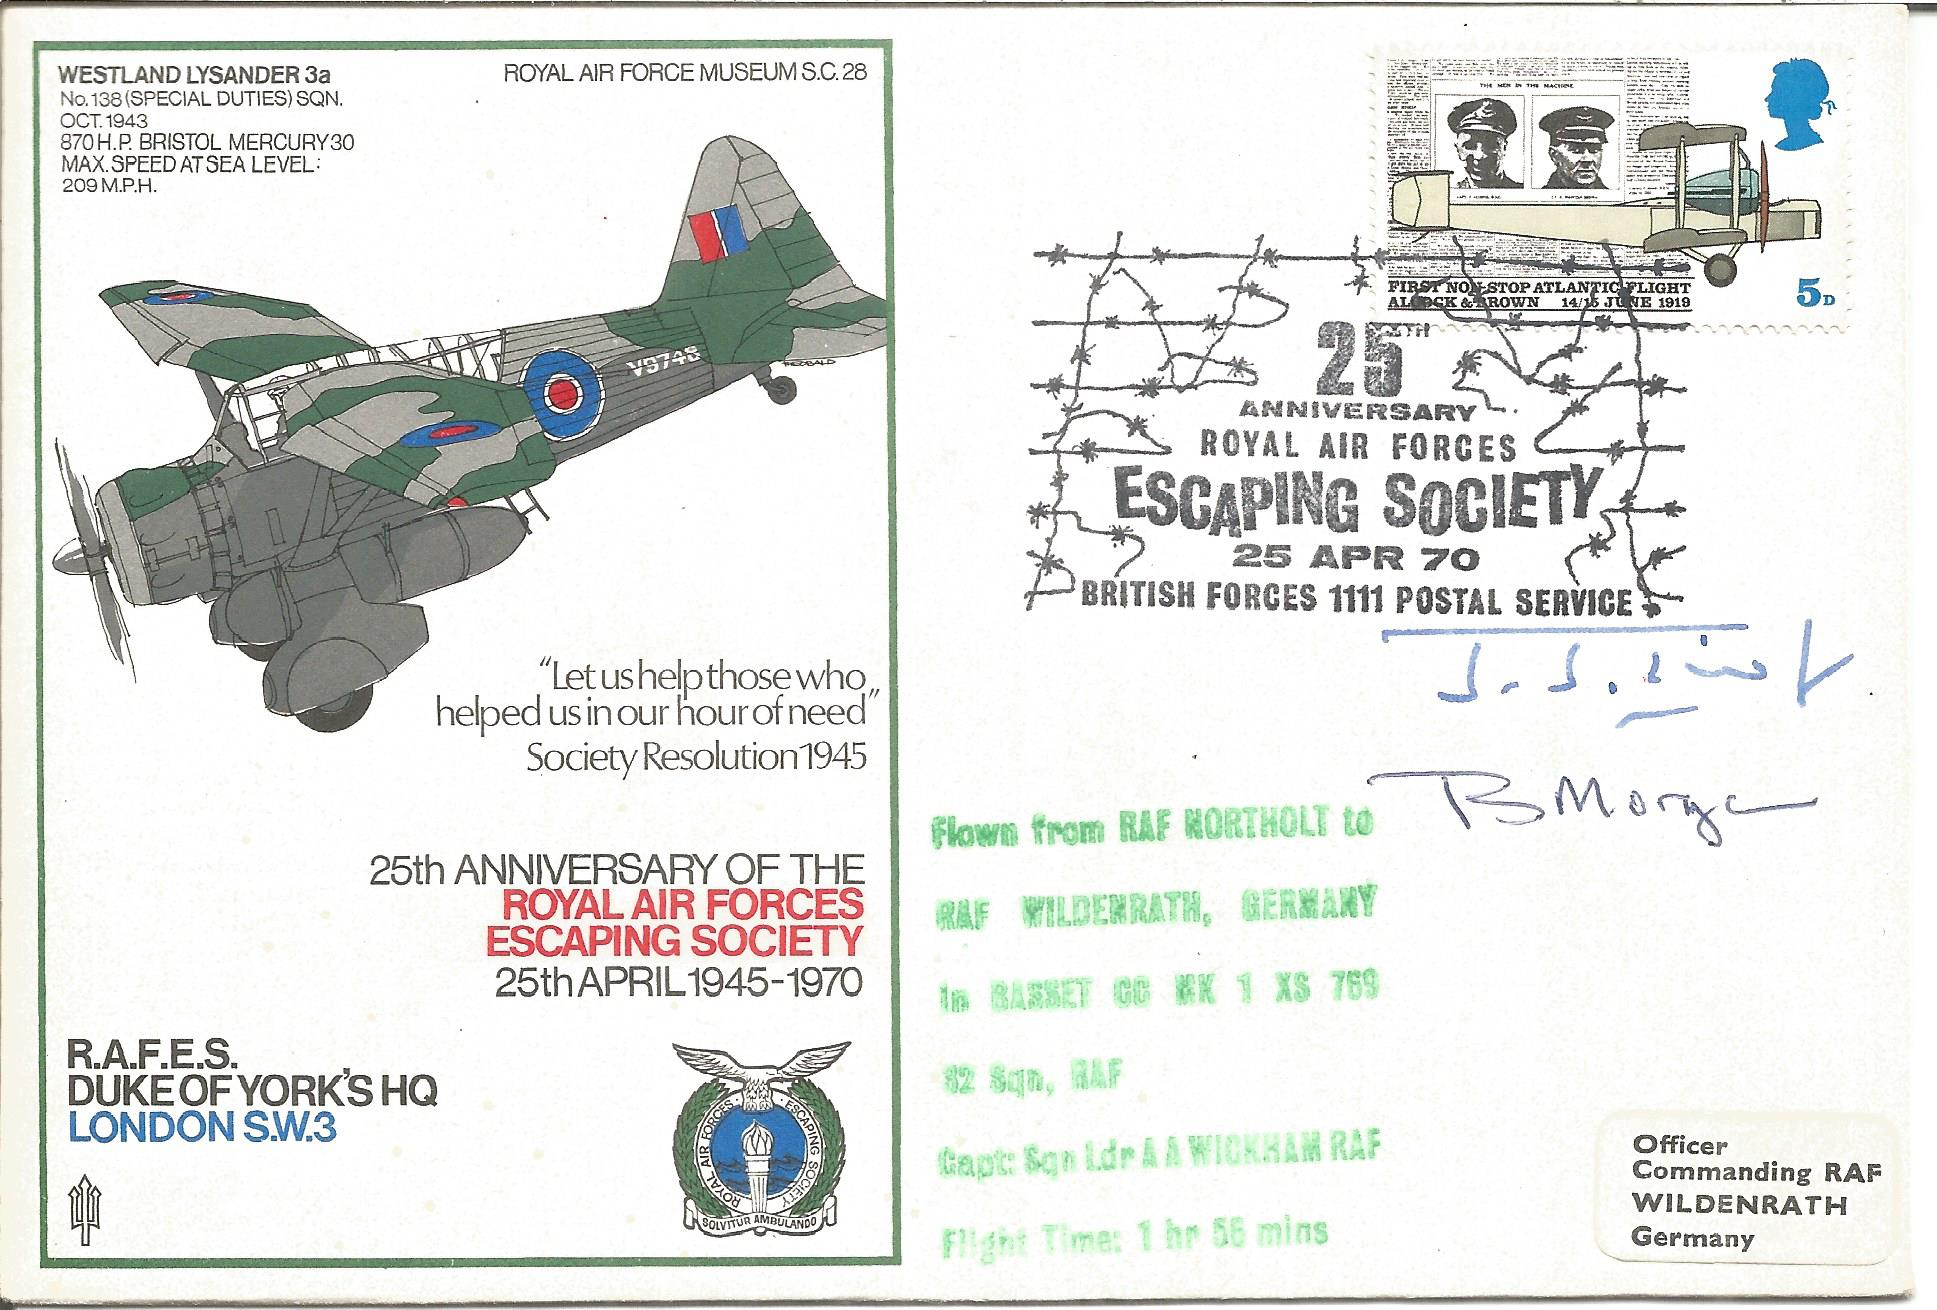 B. Morgan and J. J. Twist signed 25th Anniversary of the Royal Air Forces Escaping Society 25th